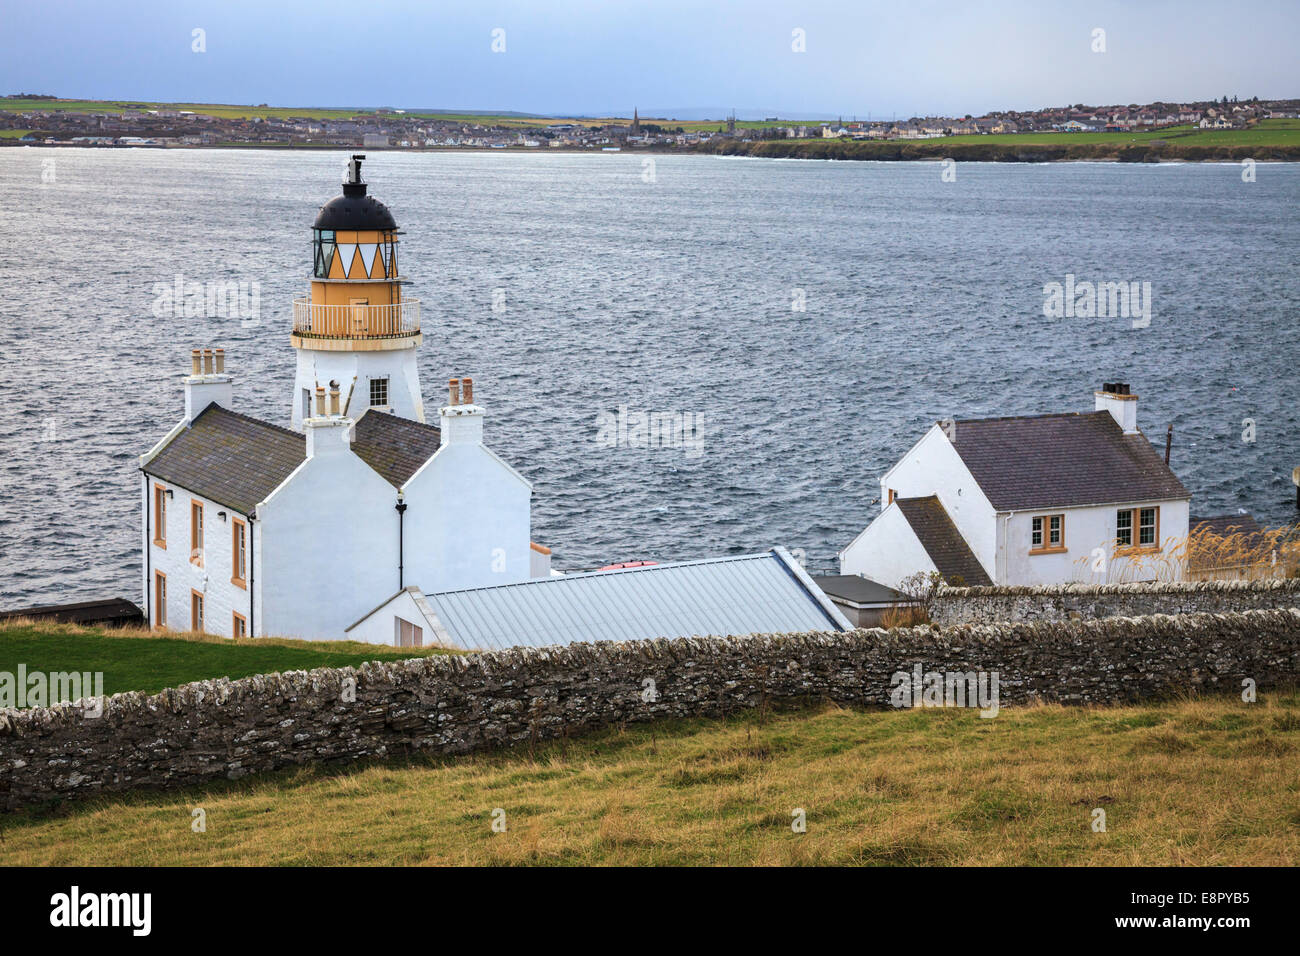 Scrabster Lighthouse near Thurso in northern Scotland - Stock Image